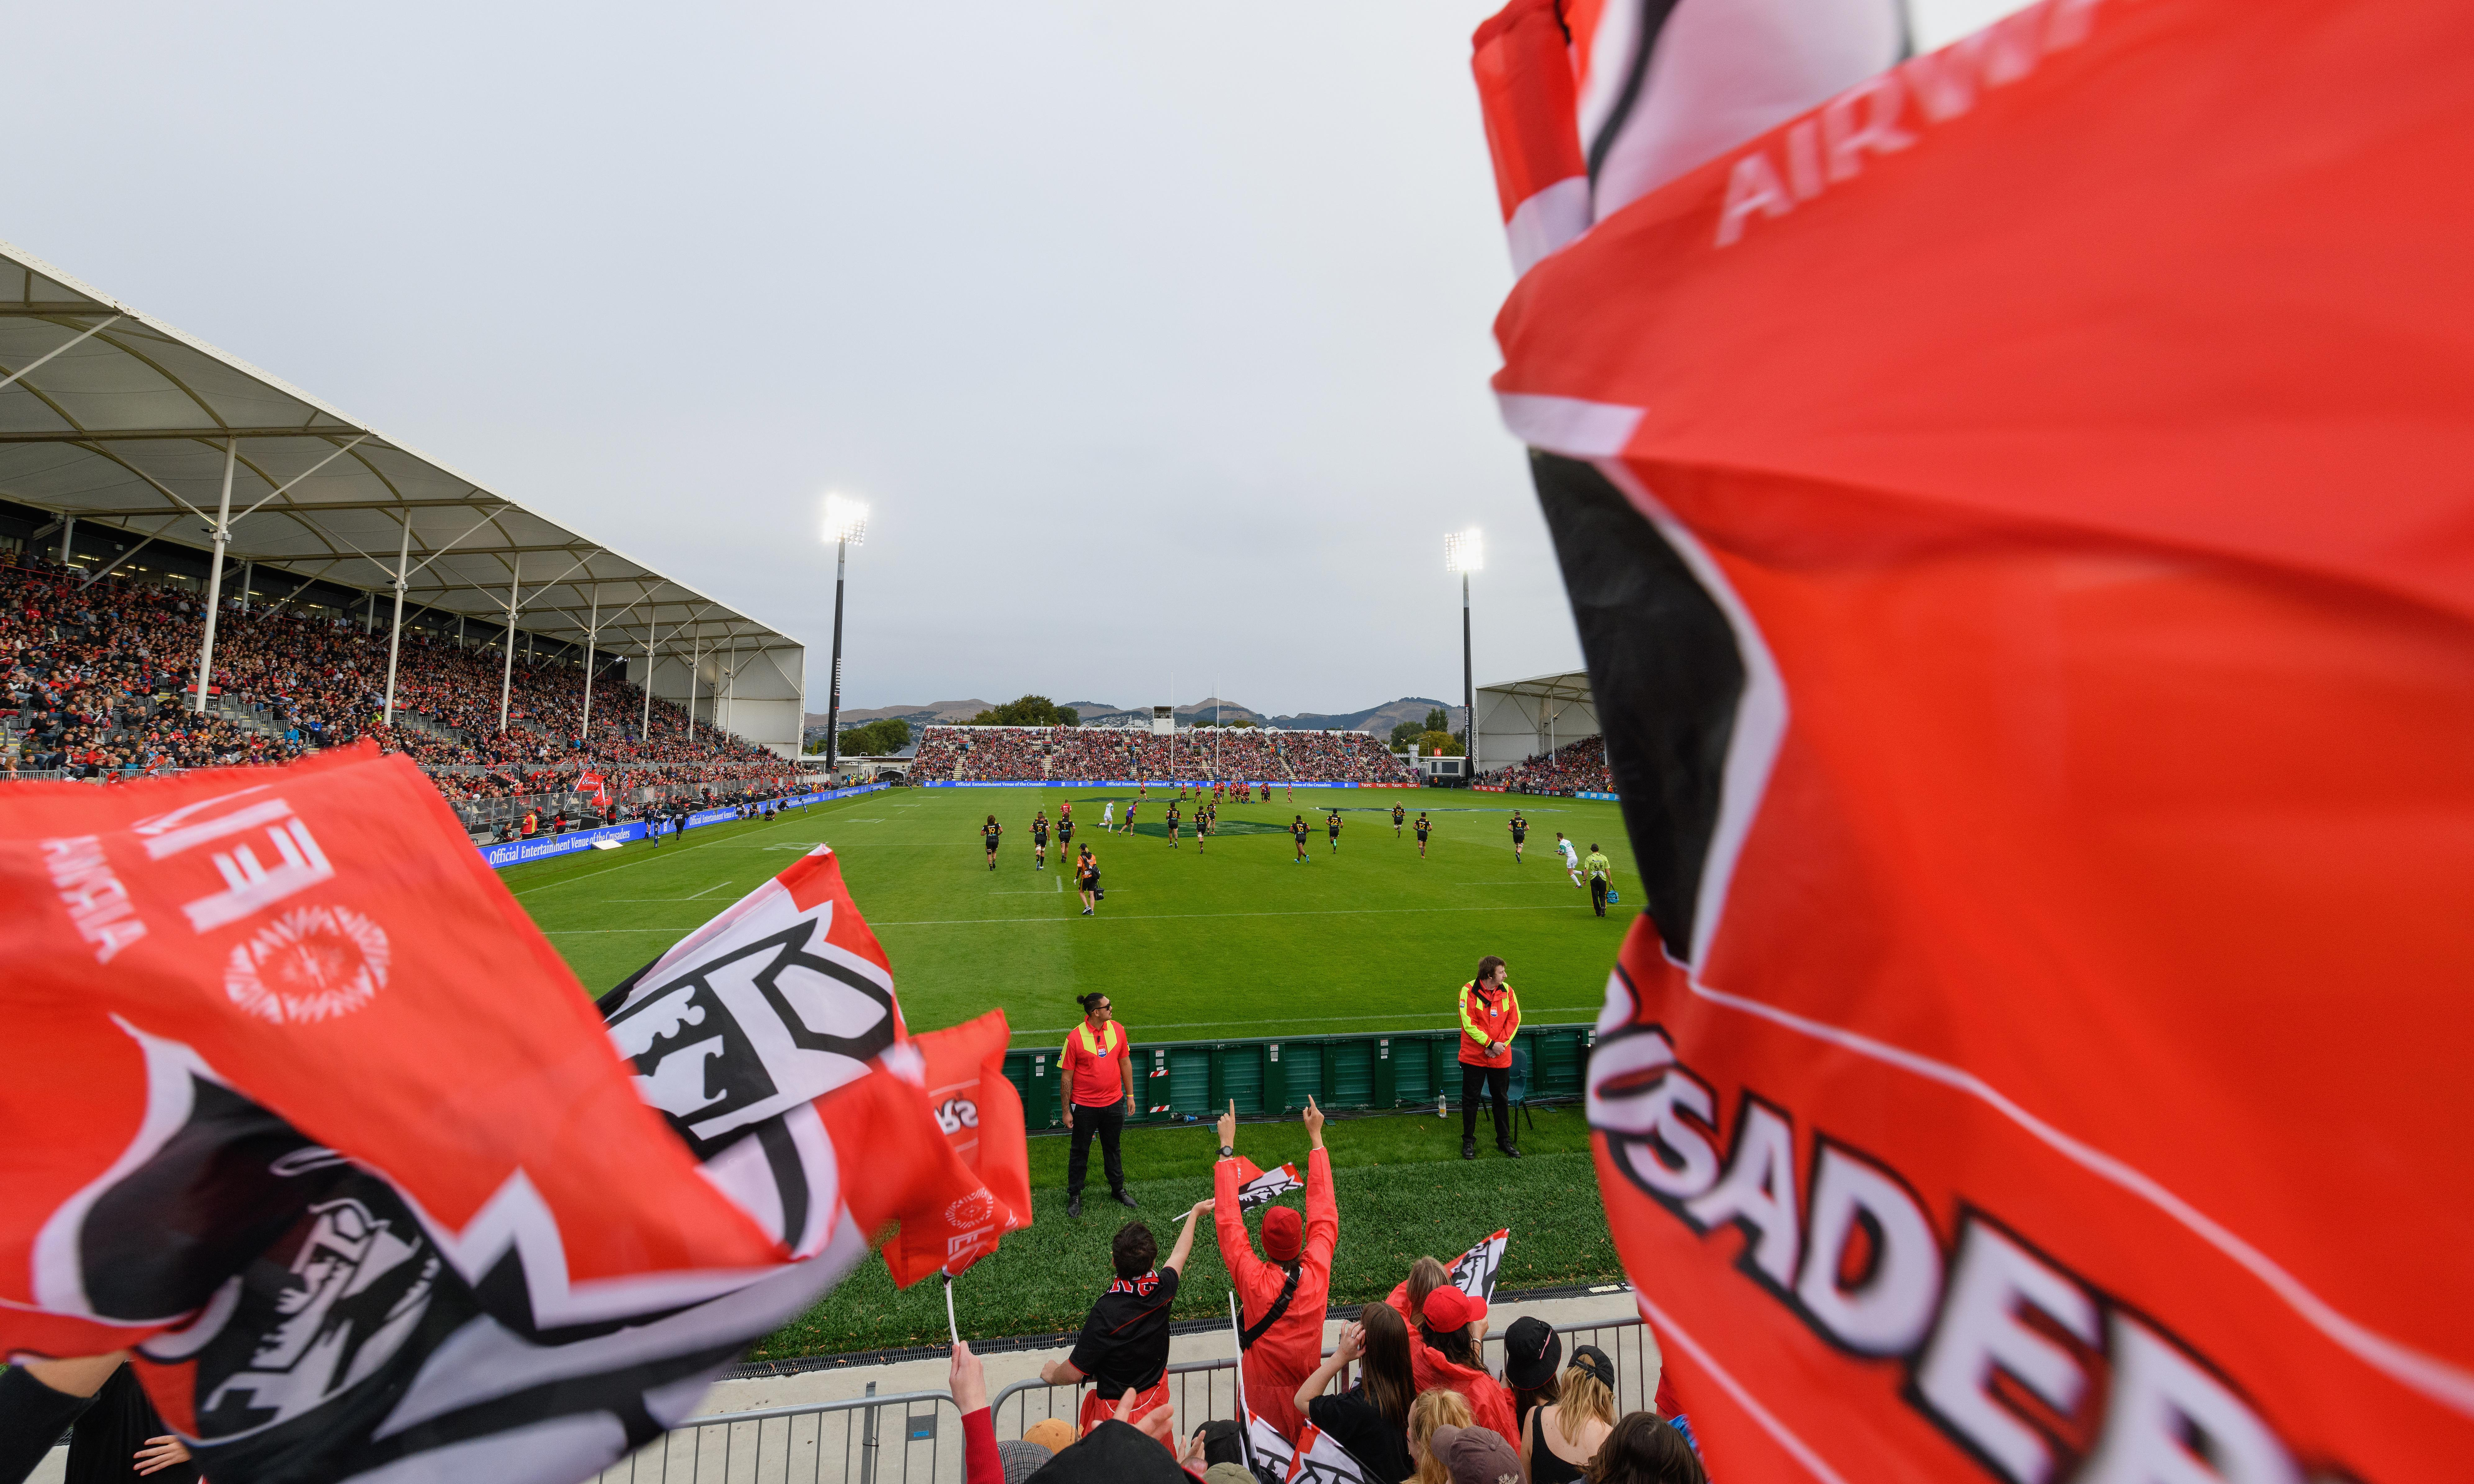 Crusaders weigh up name change after Christchurch attack